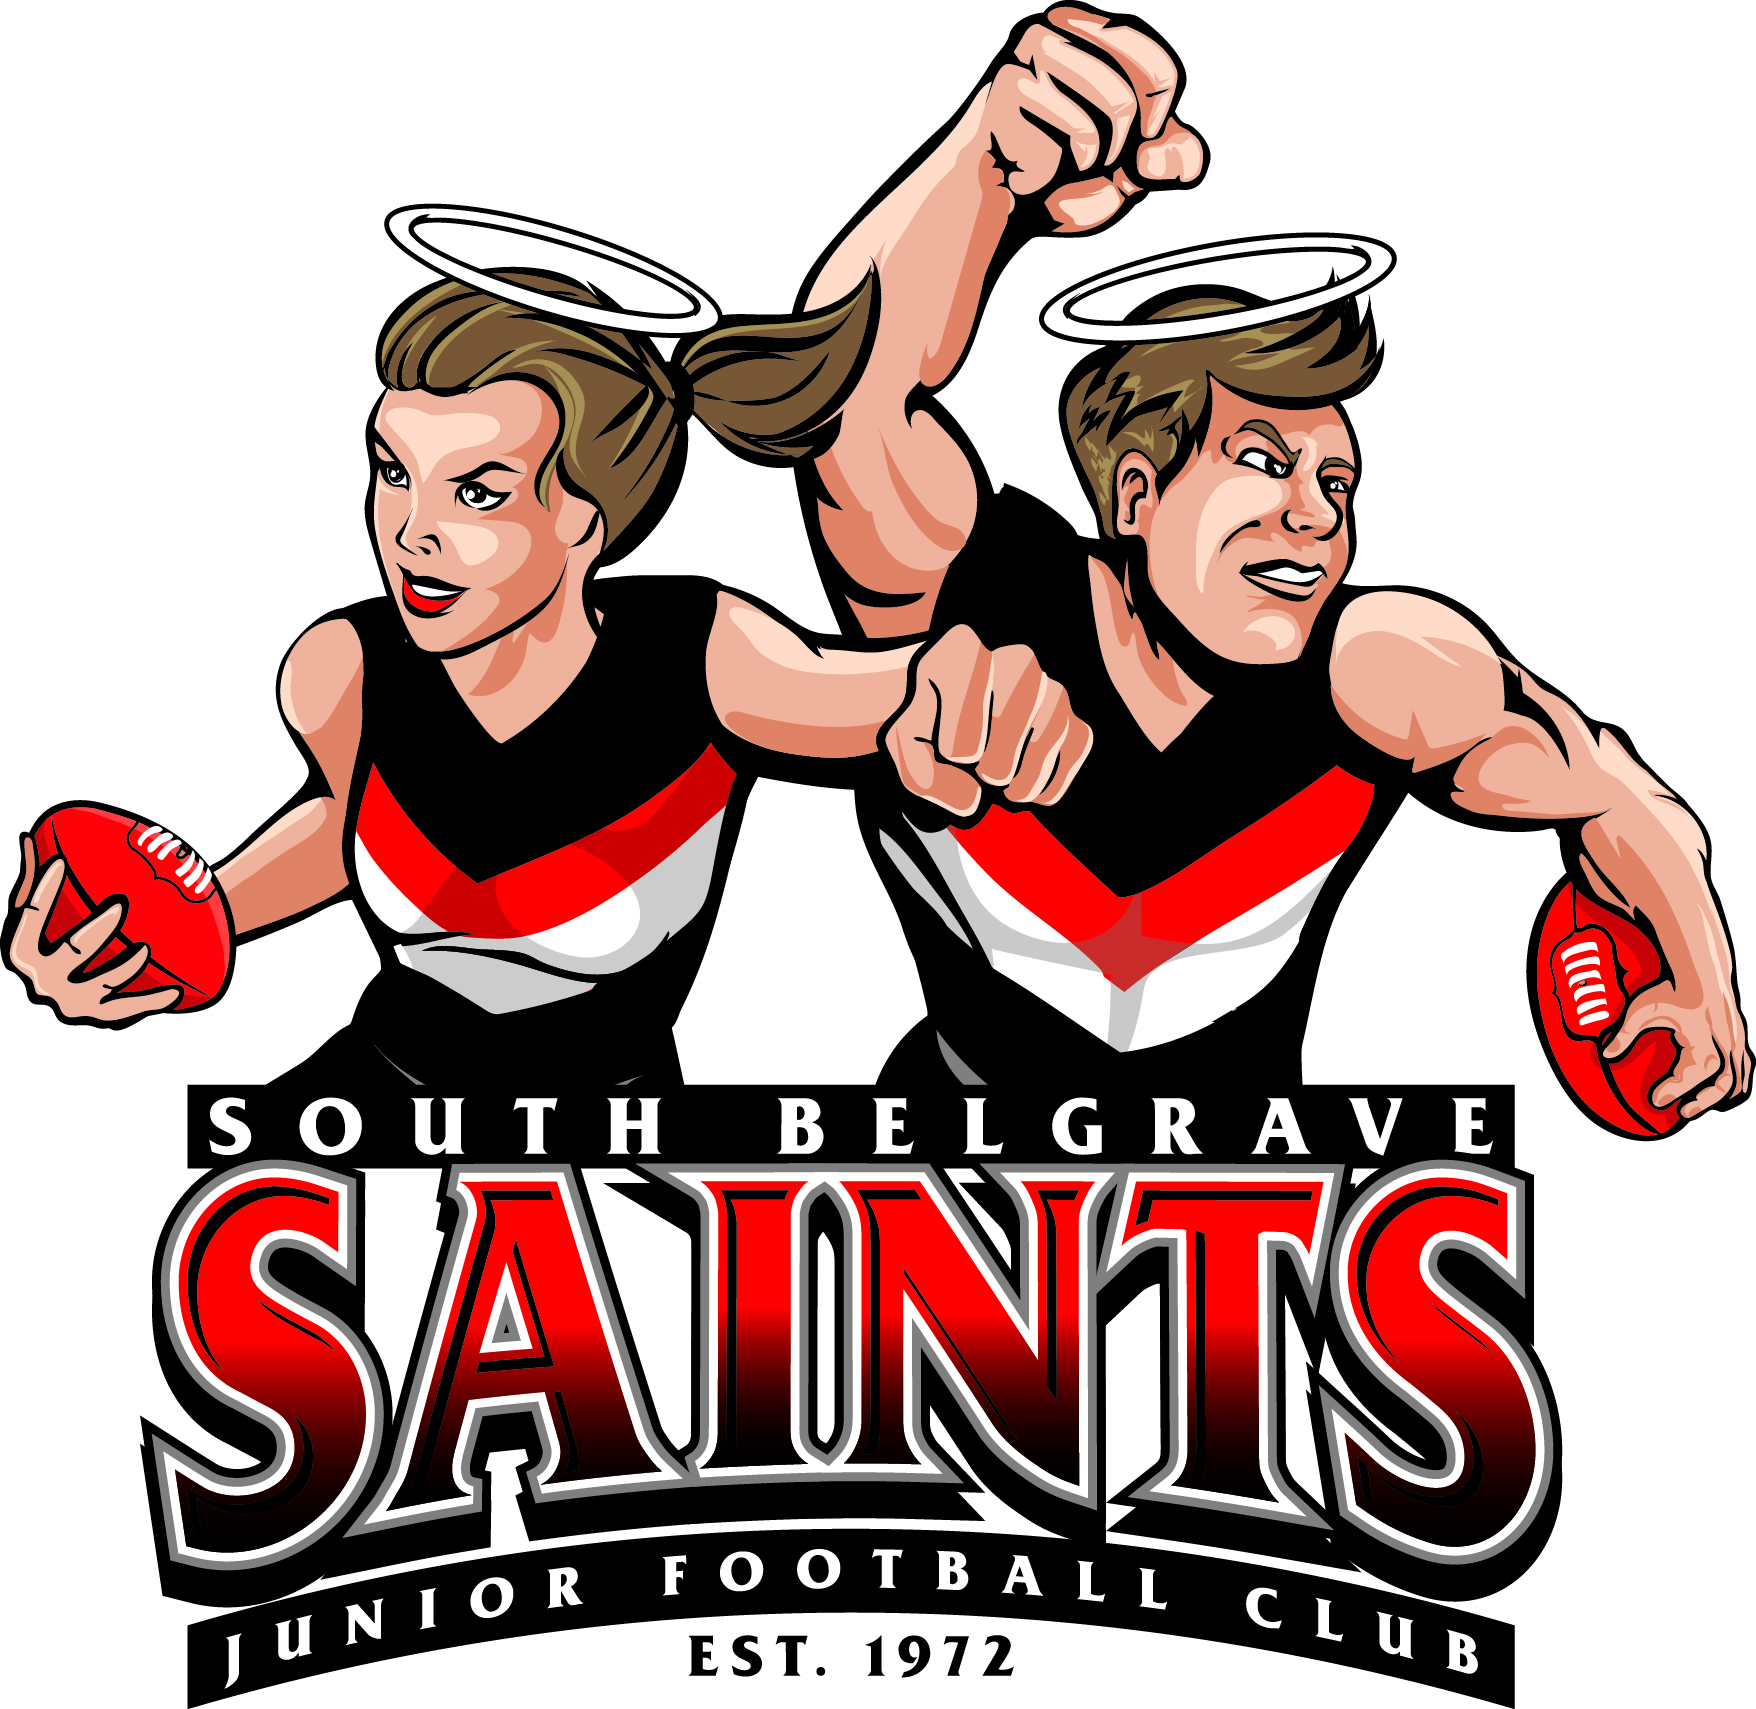 South Belgrave Junior Football Club